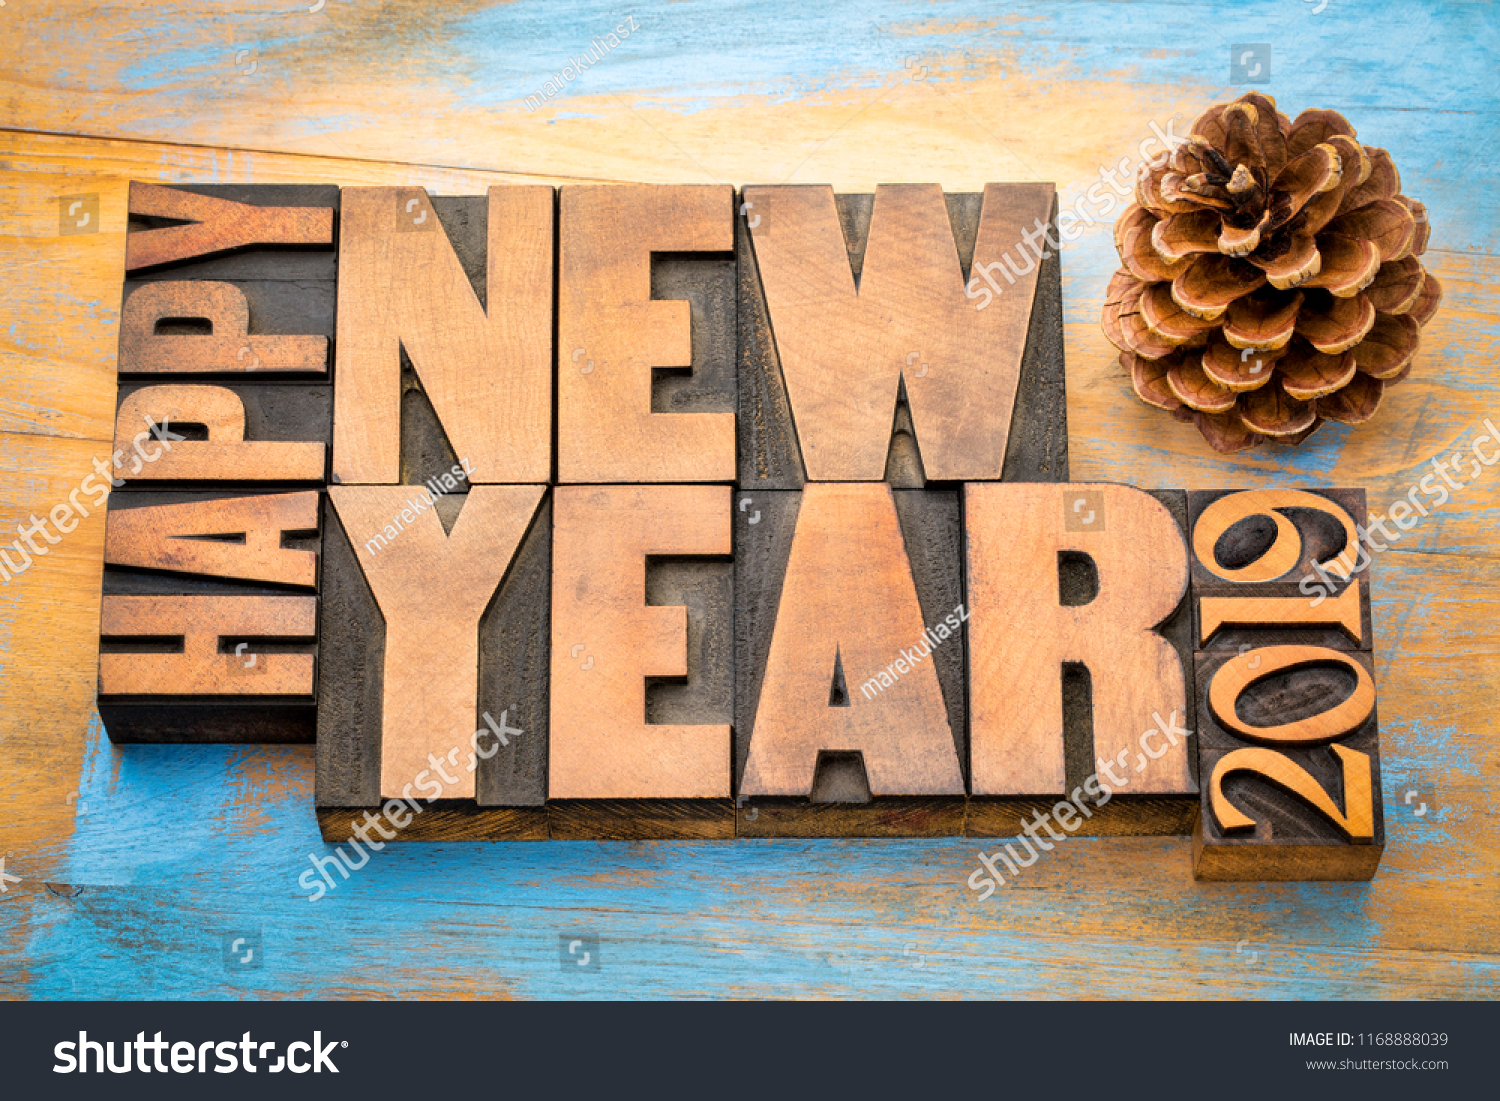 happy new year 2019 greeting card word abstract t in vintage letterpress wood type blocks